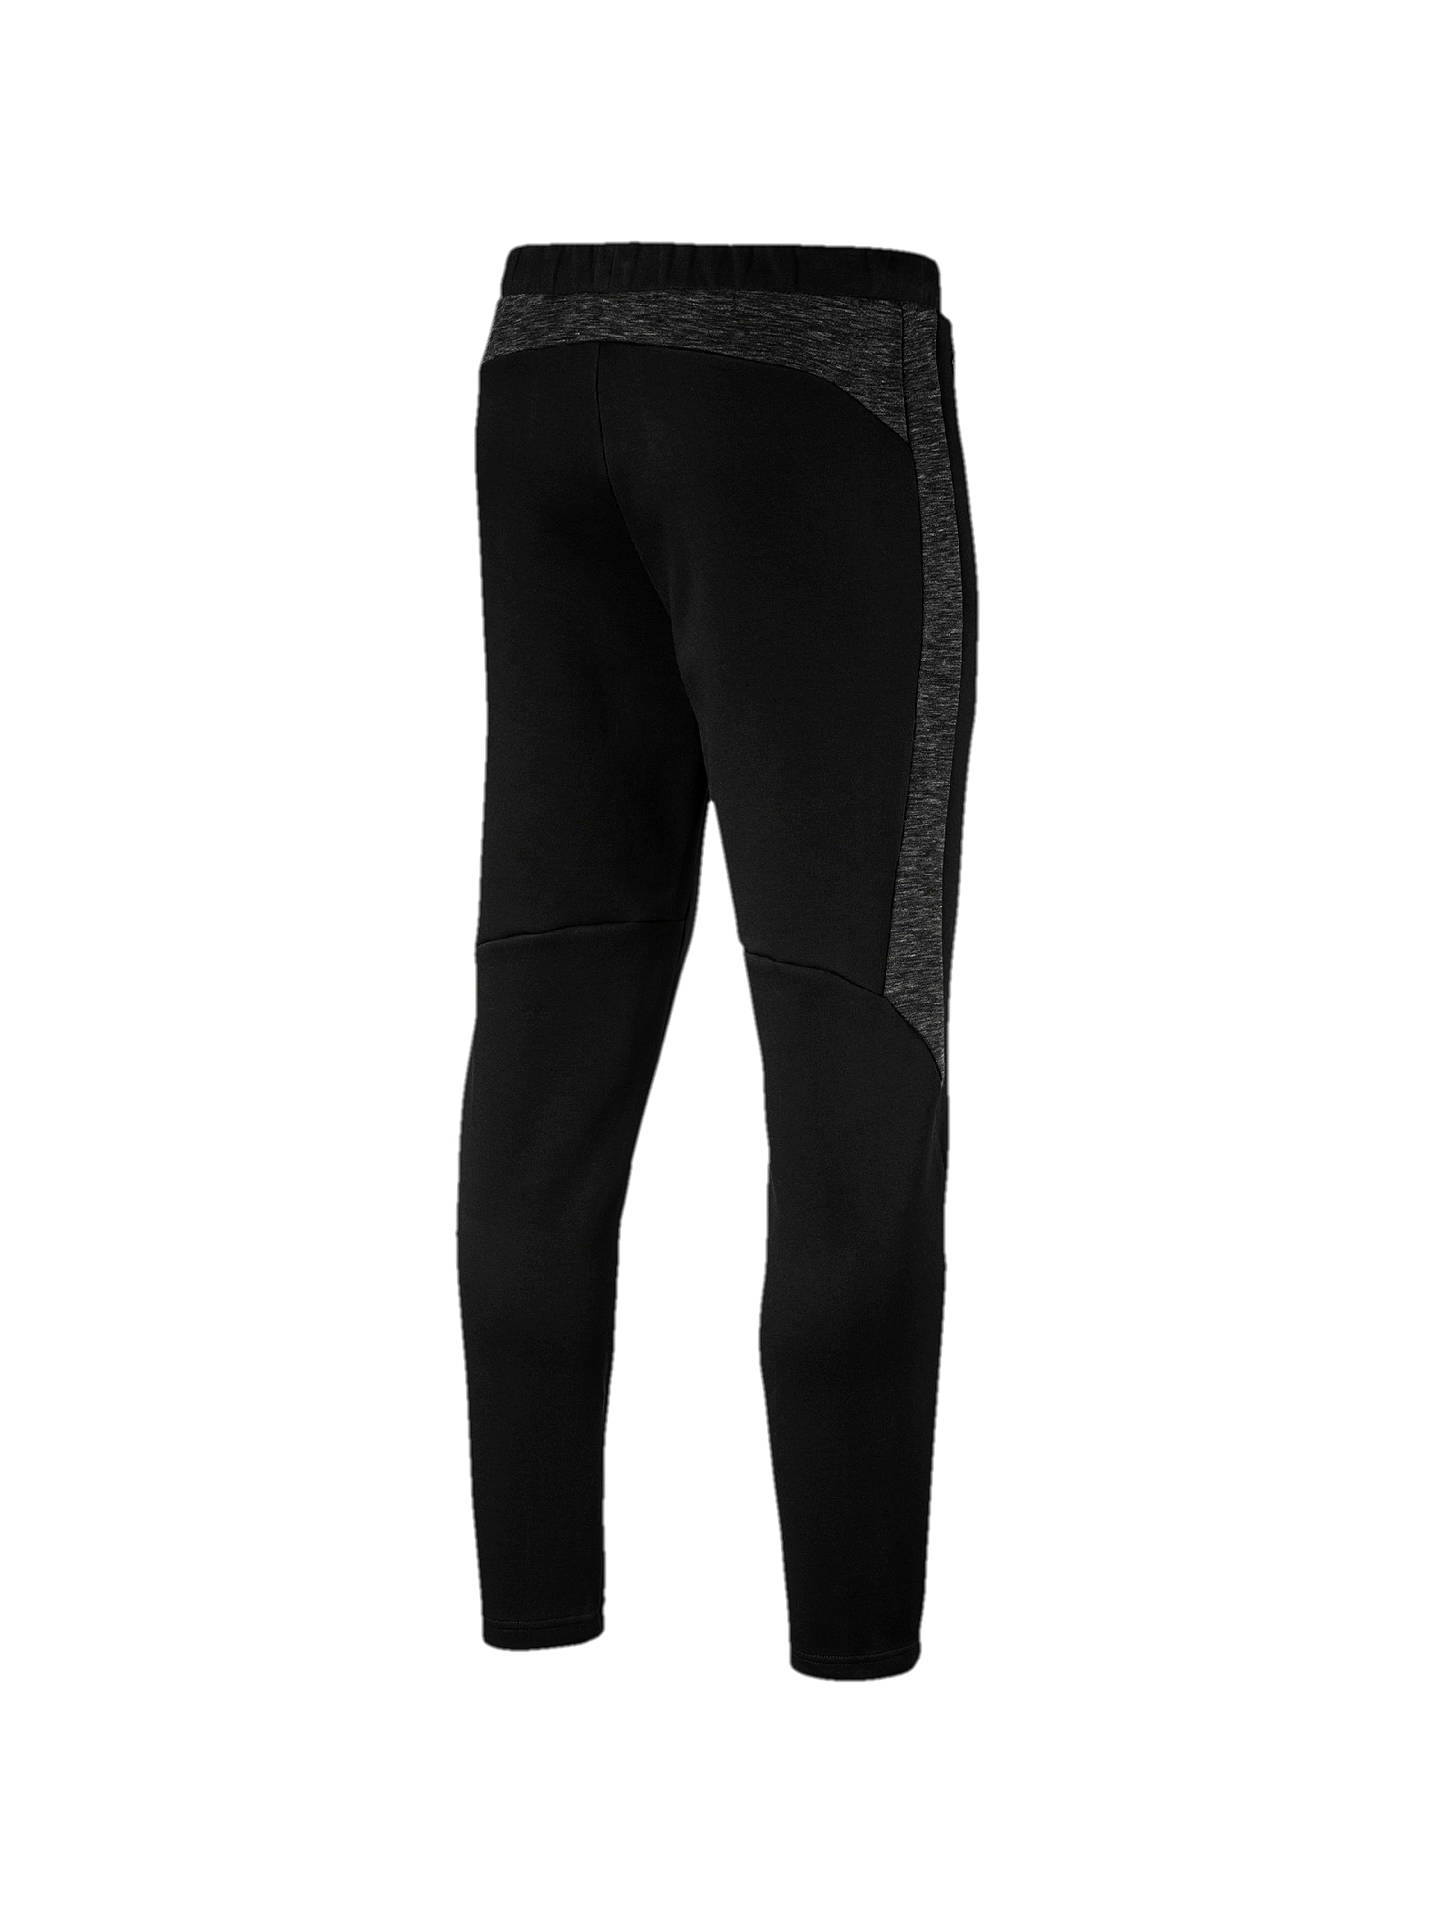 Buy PUMA Evostripe Training Tracksuit Bottoms, Cotton Black, S Online at johnlewis.com